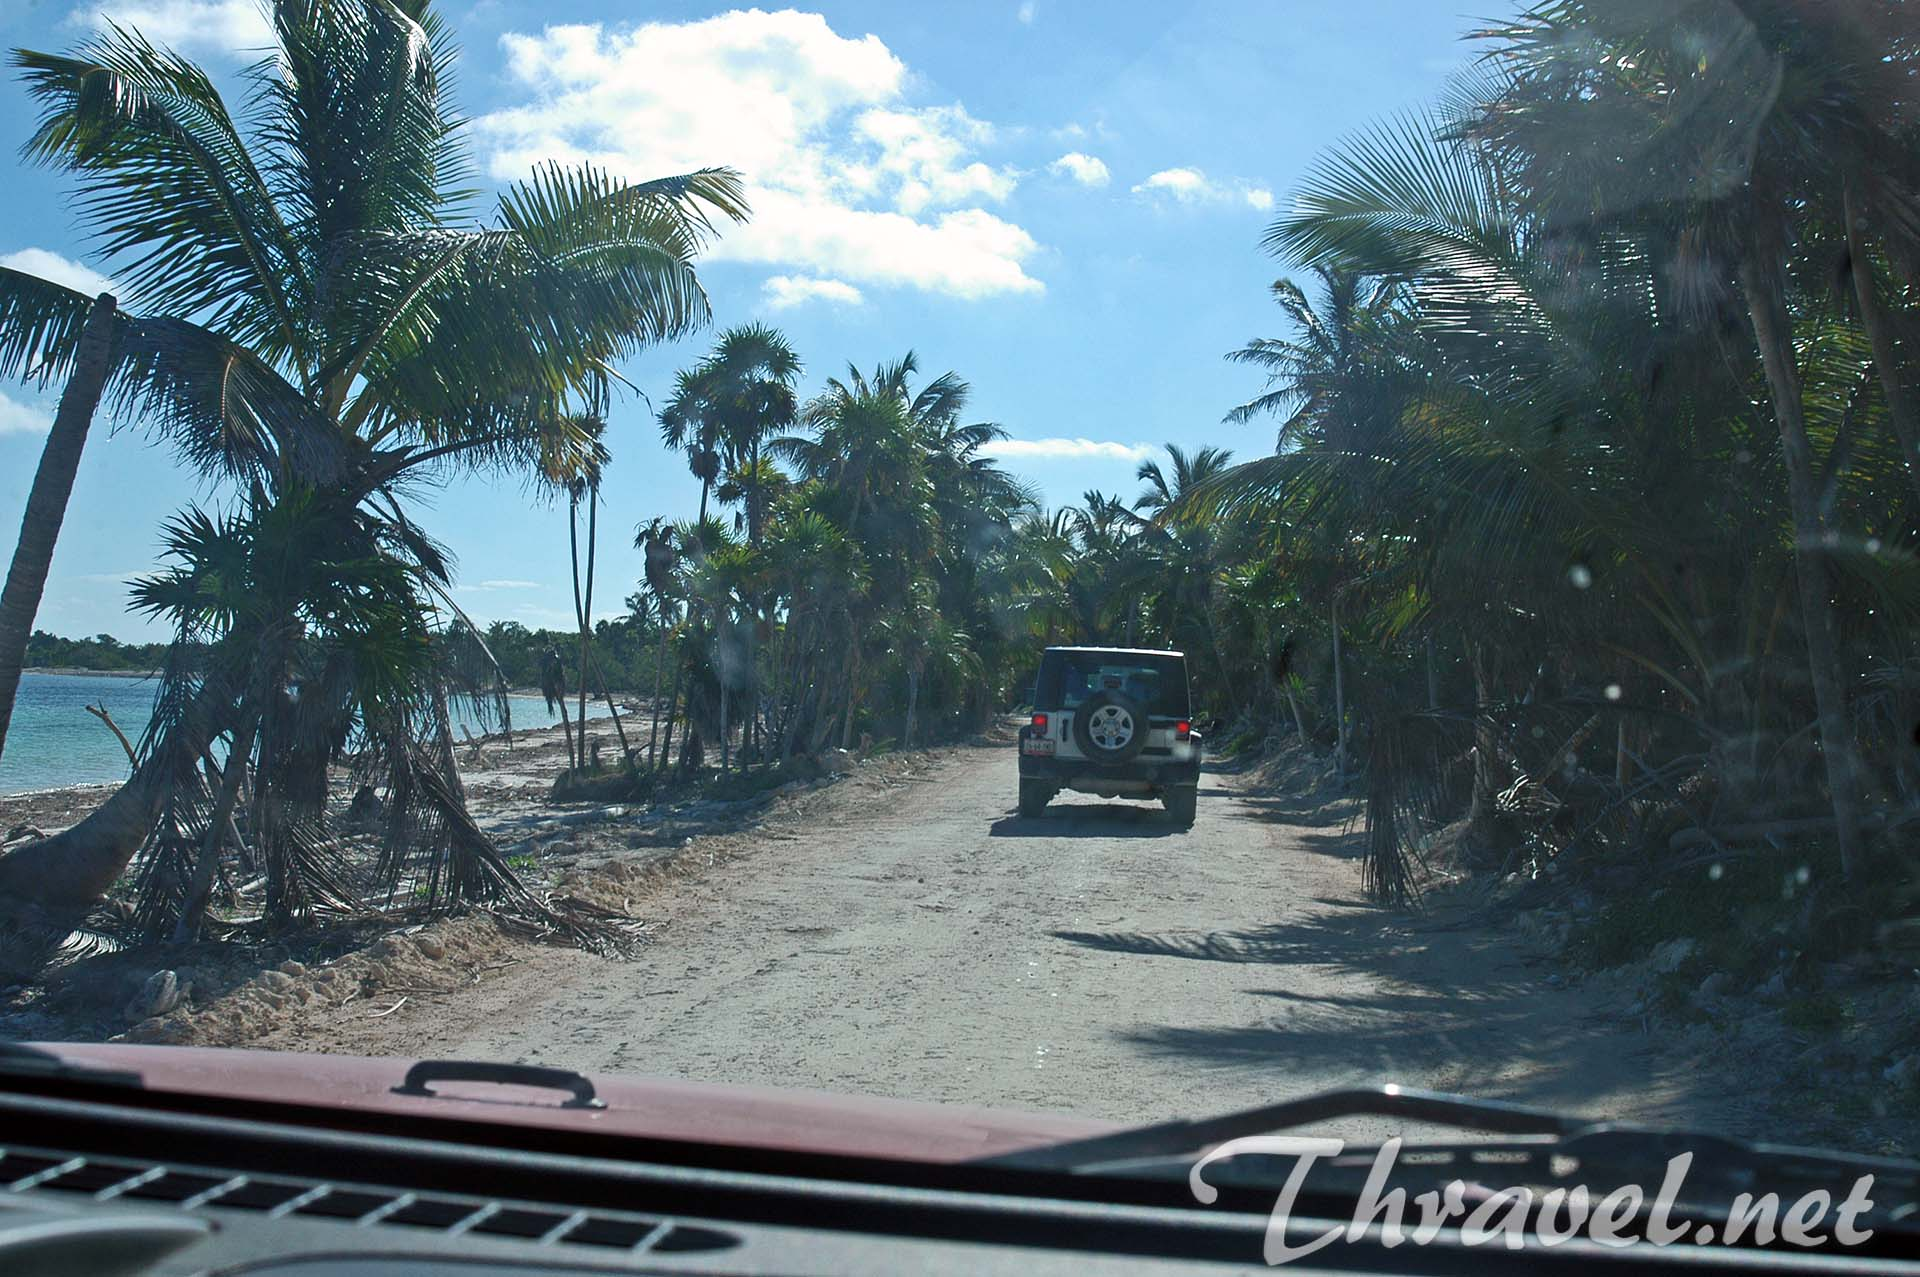 jeep-safari-yucatan